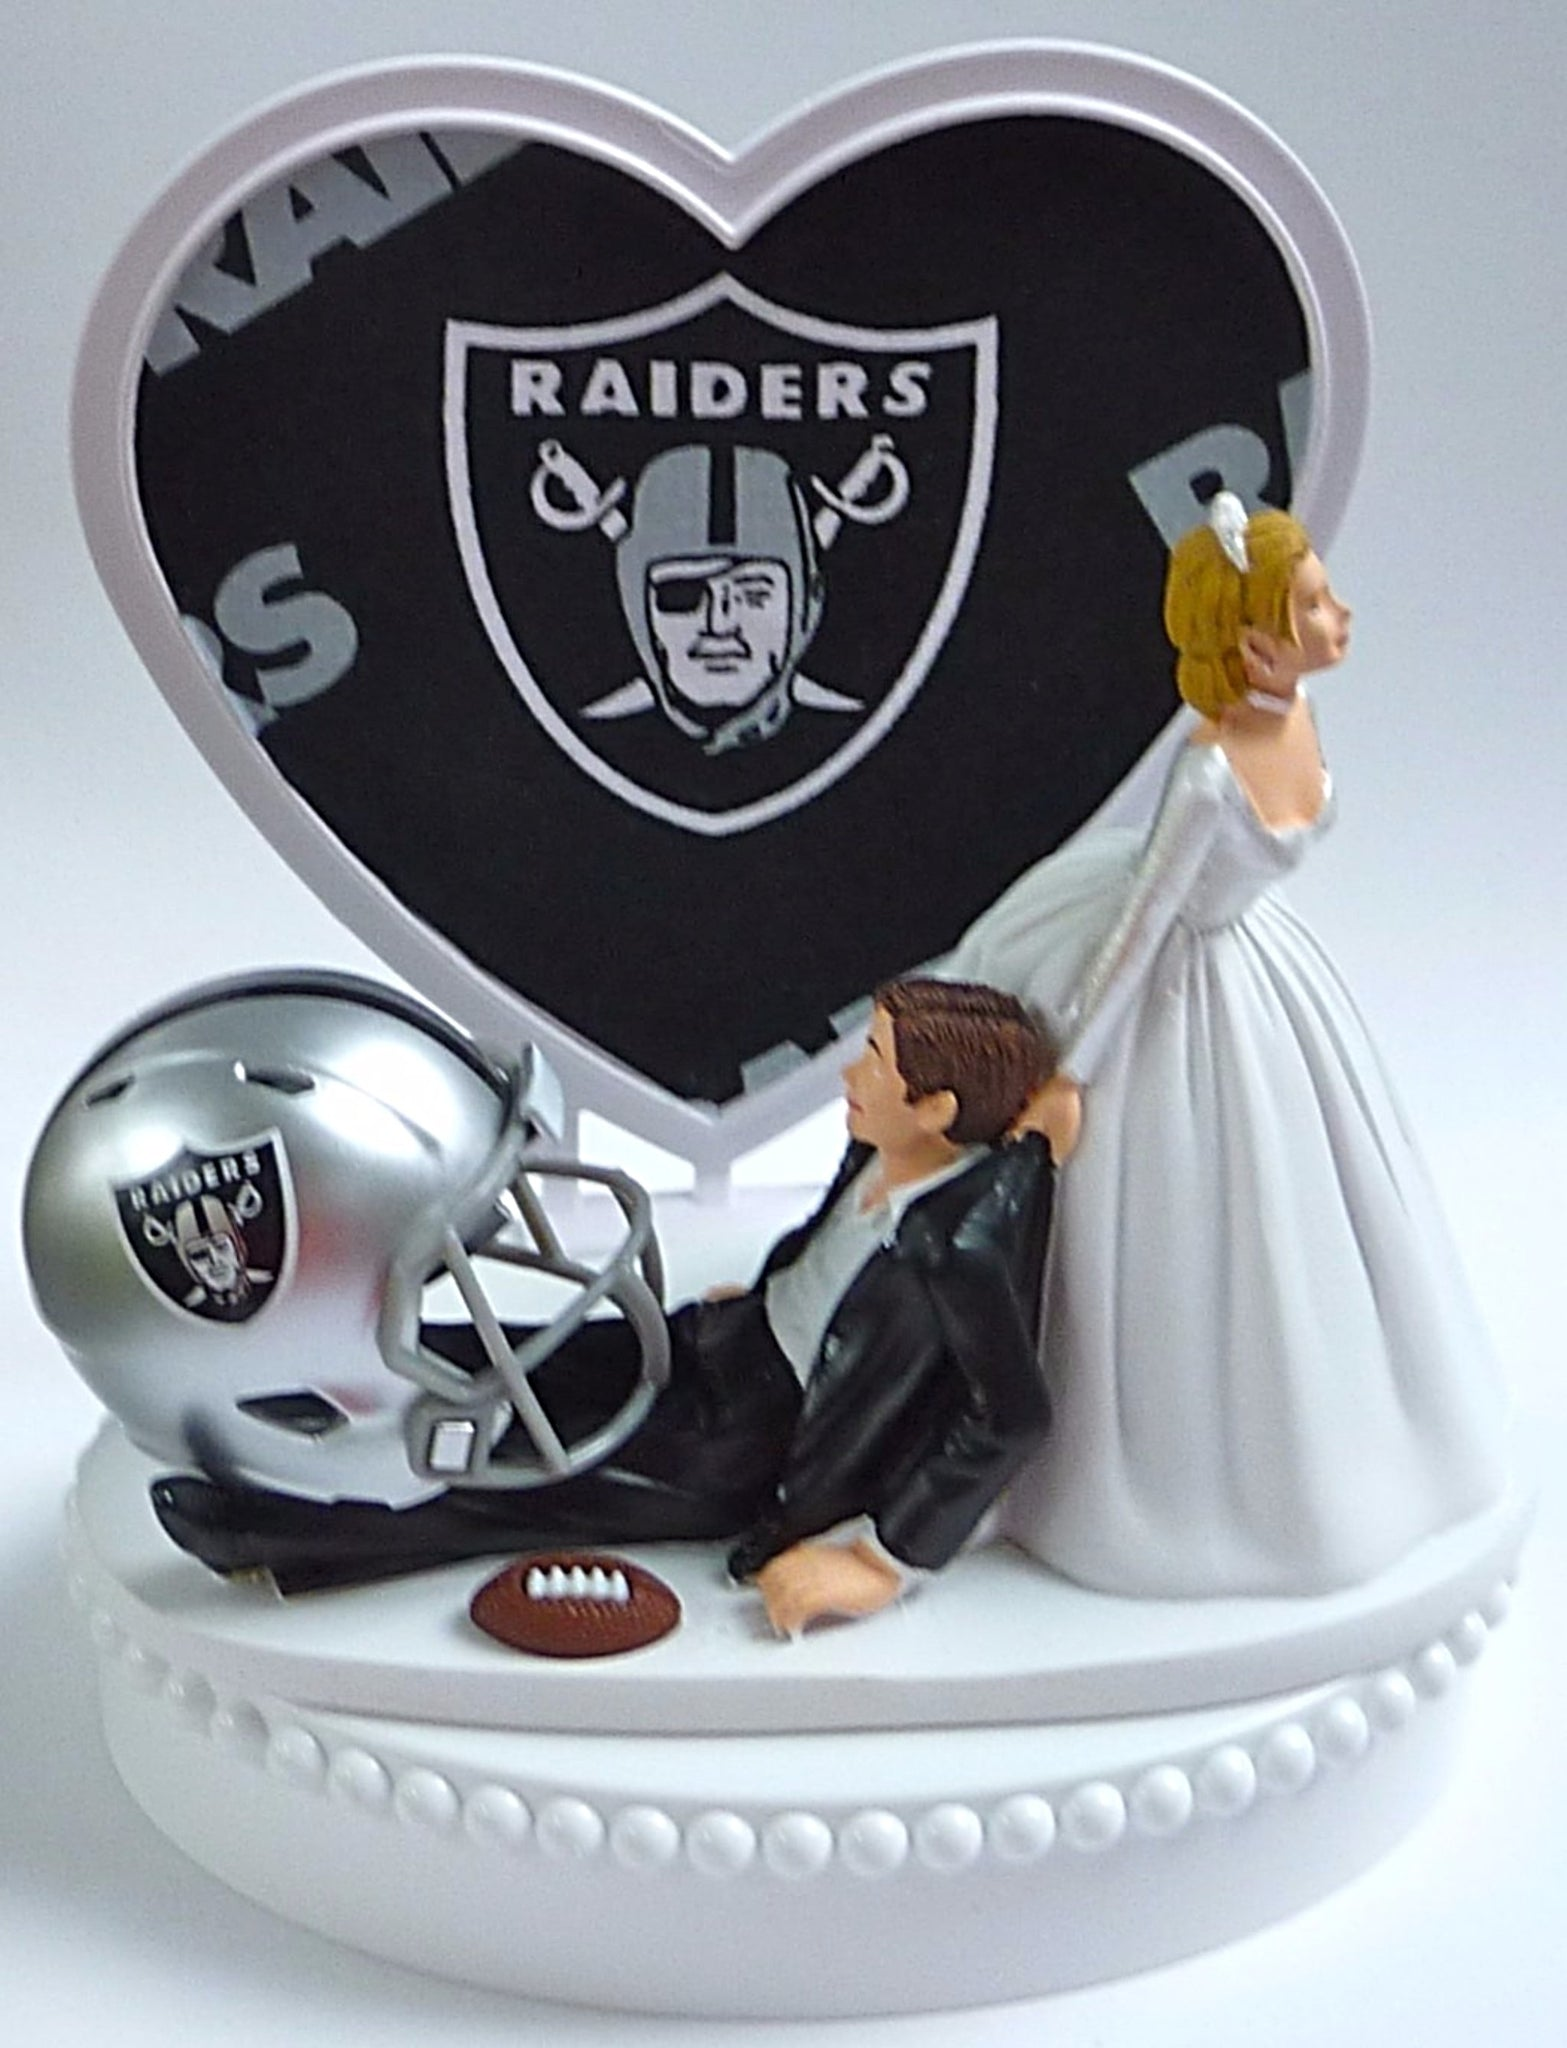 Oakland Raiders cake topper wedding football green turf astroturf bride groom's cake top humorous funny reception sports fans